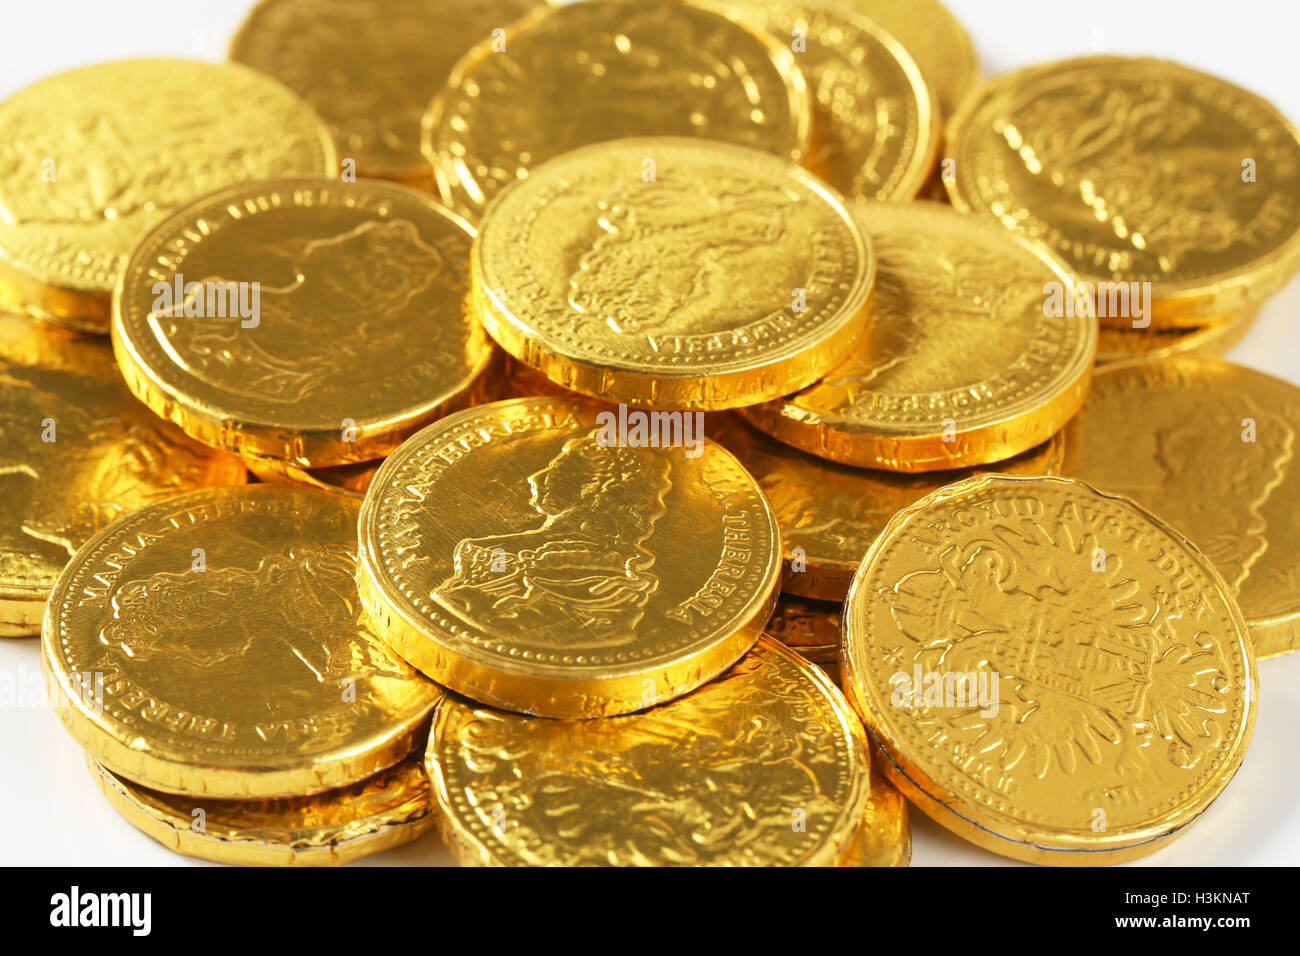 Chocolate money stock photos chocolate money stock images alamy detail of golden chocolate coins pile stock image spiritdancerdesigns Image collections